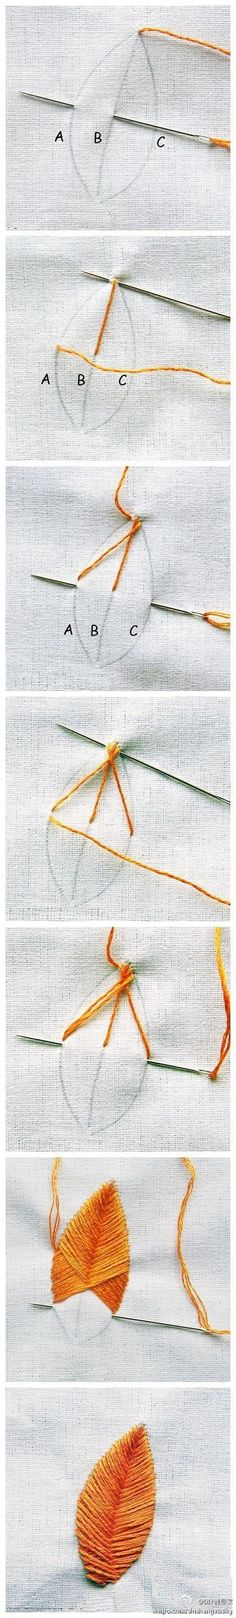 Embroider a leaf tutorial